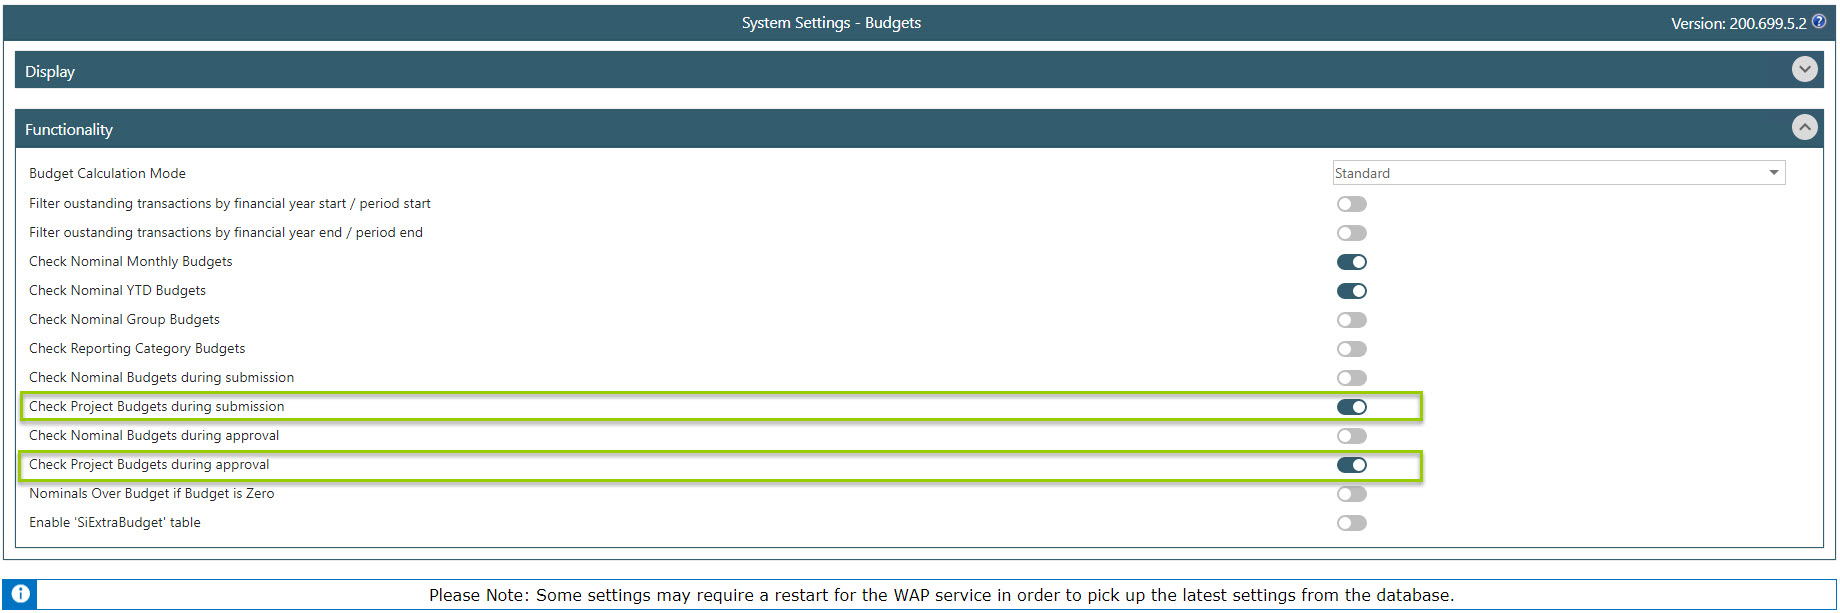 Sicon WAP Purchase Requisitions Help and User Guide - Requisition HUG Section 21.2 Image 1